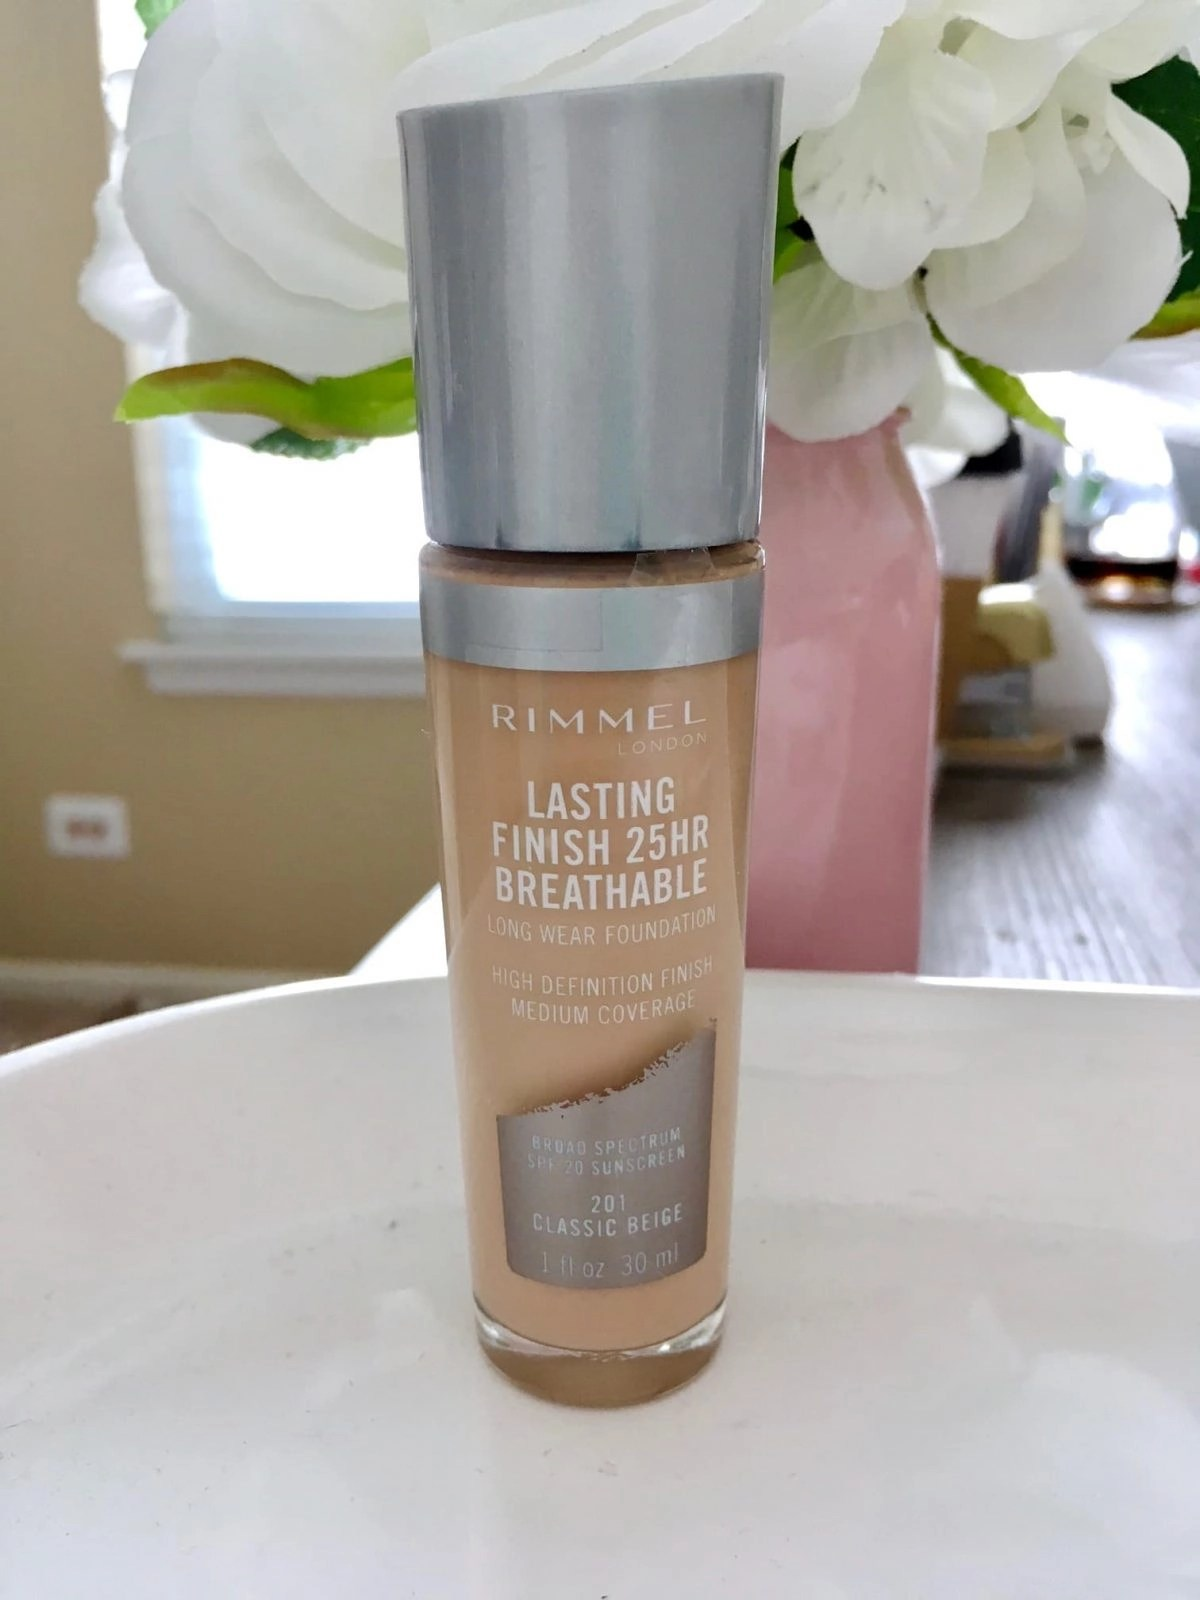 Rimmel London Lasting Finish 25 Hr Breathable Foundation and Concealer